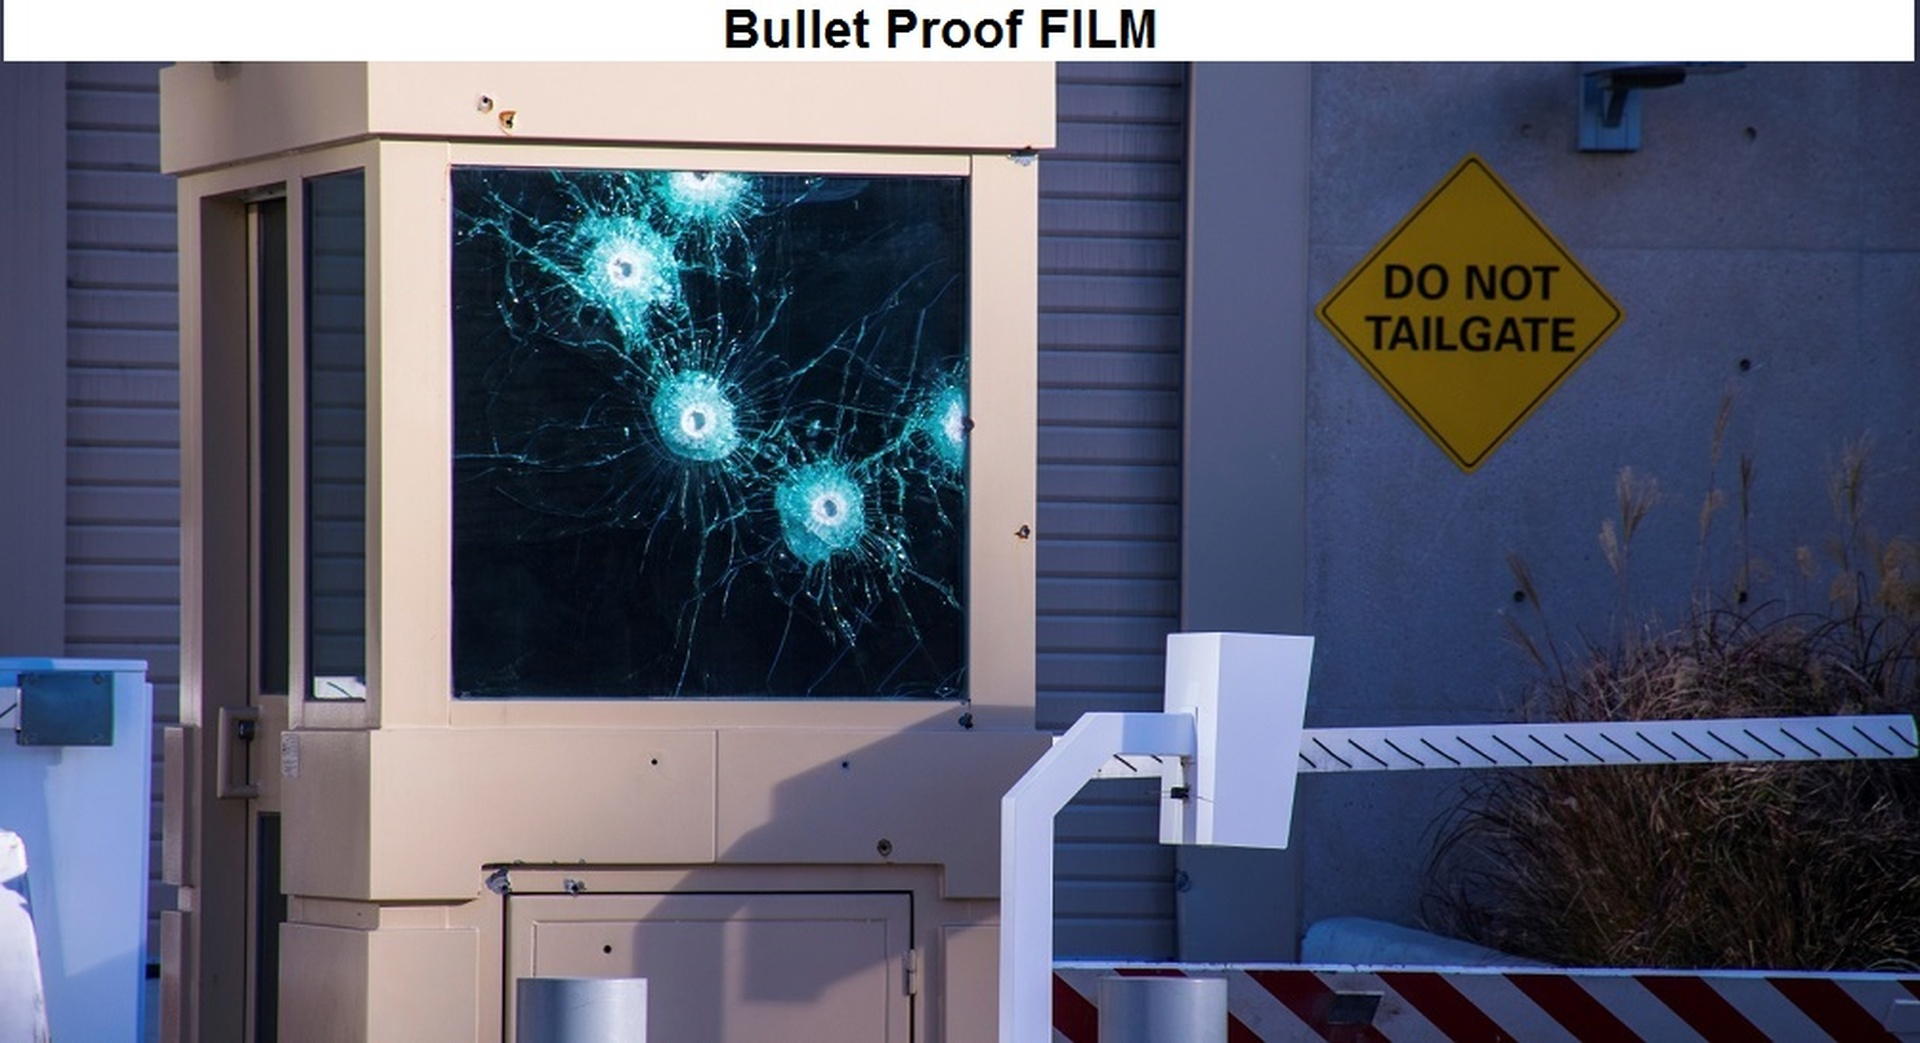 Bullet Proof Film